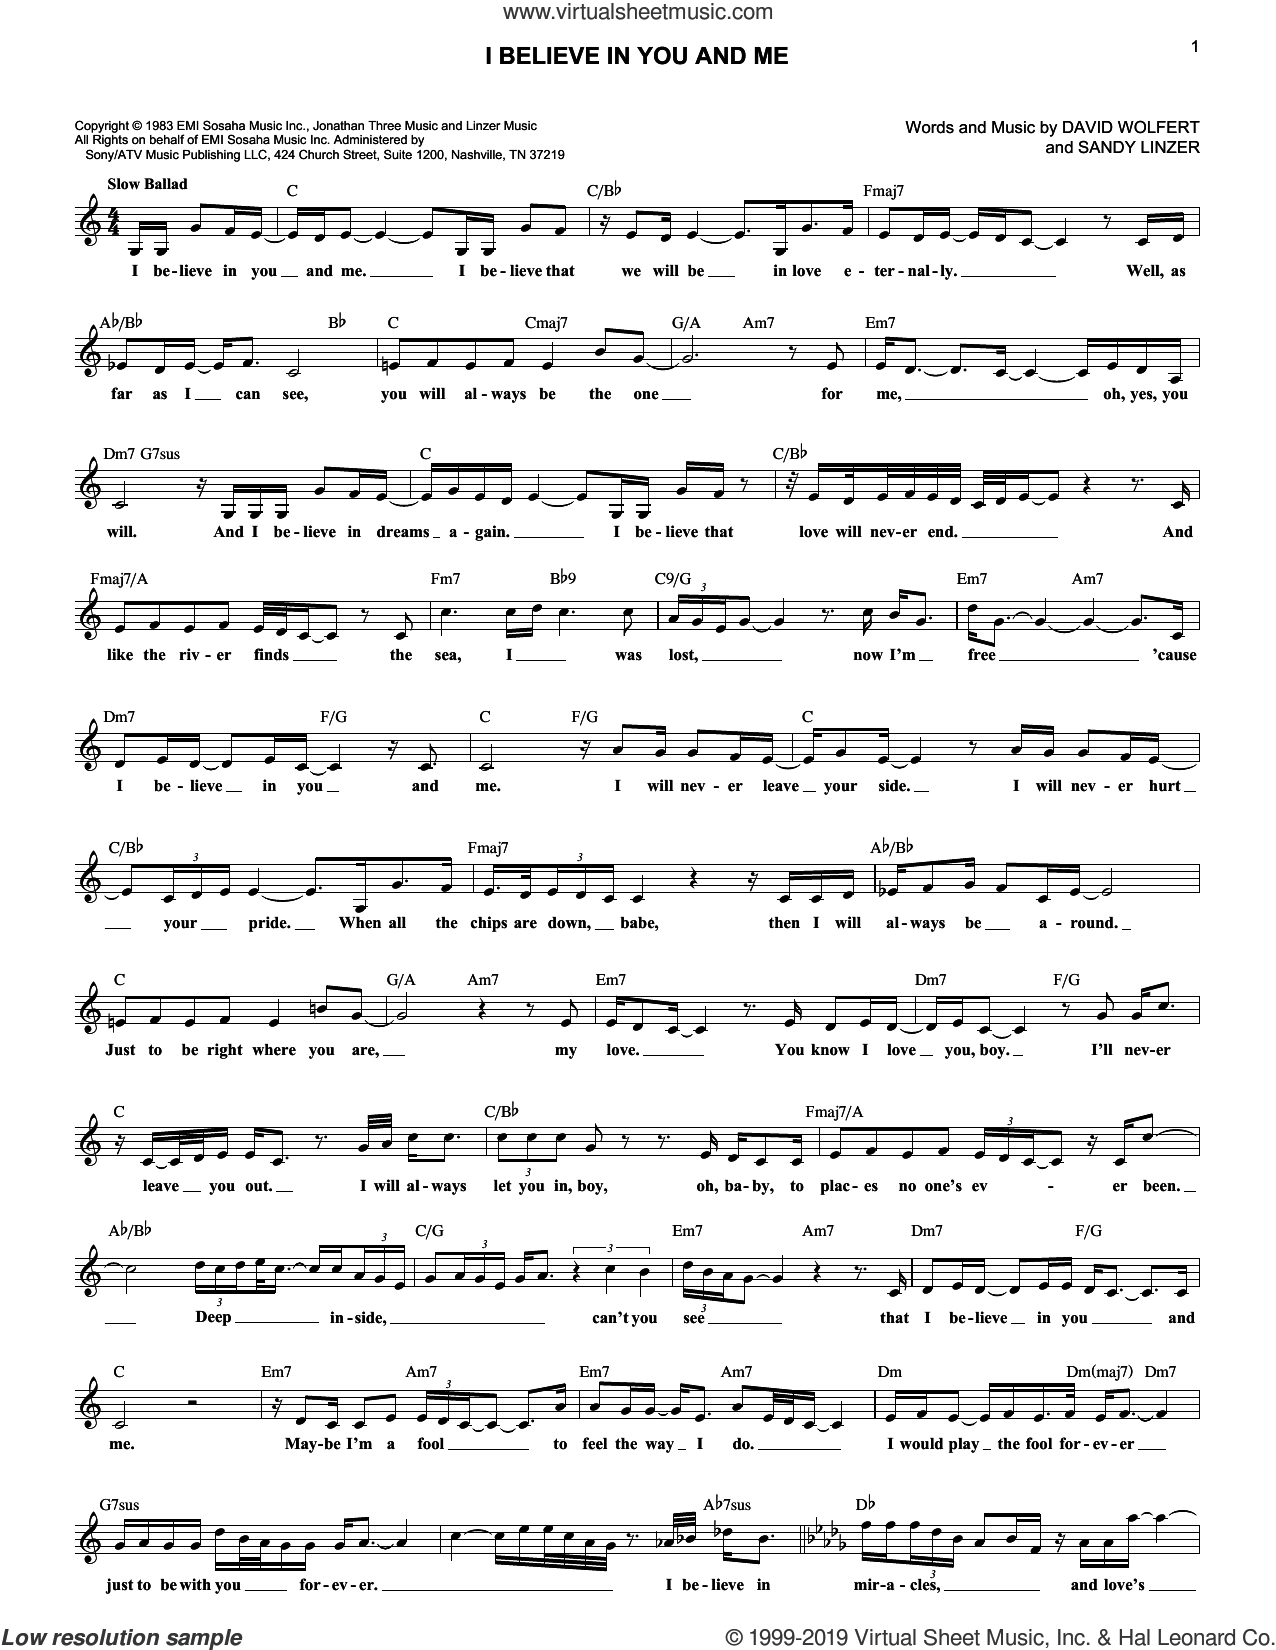 I Believe In You And Me sheet music for voice and other instruments (fake book) by The Four Tops, Whitney Houston, David Wolfert and Sandy Linzer, intermediate skill level